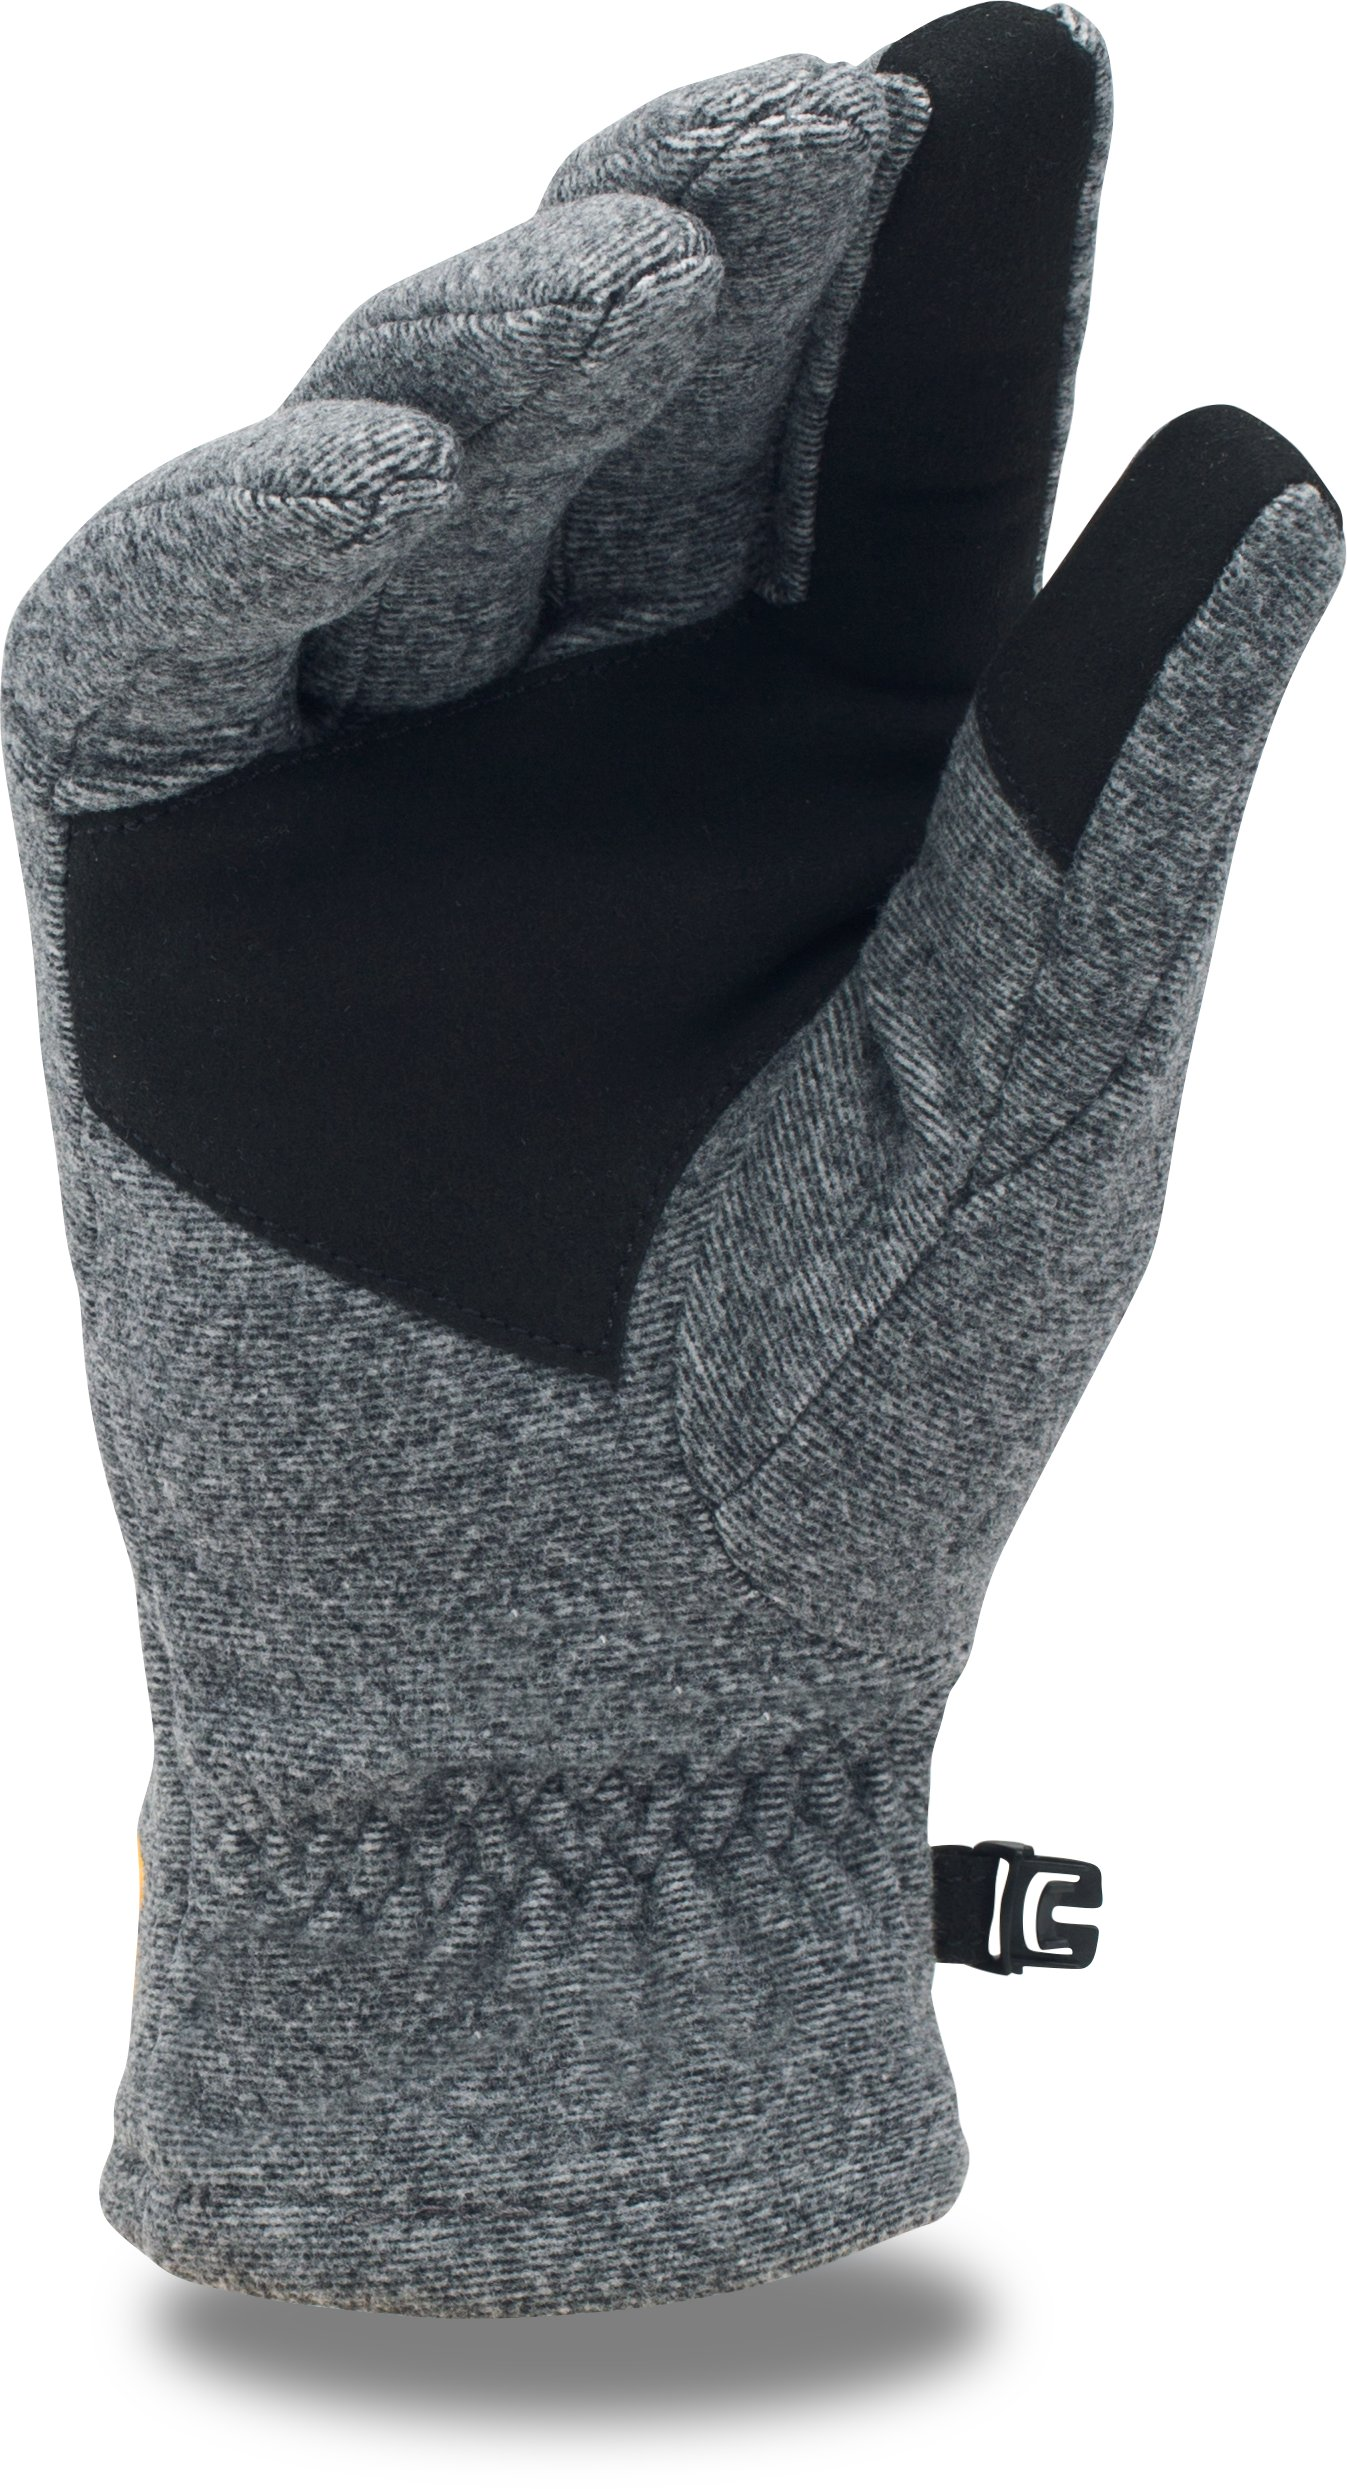 Men's NFL Combine Authentic UA ColdGear® Infrared Fleece Gloves, Green Bay Packers